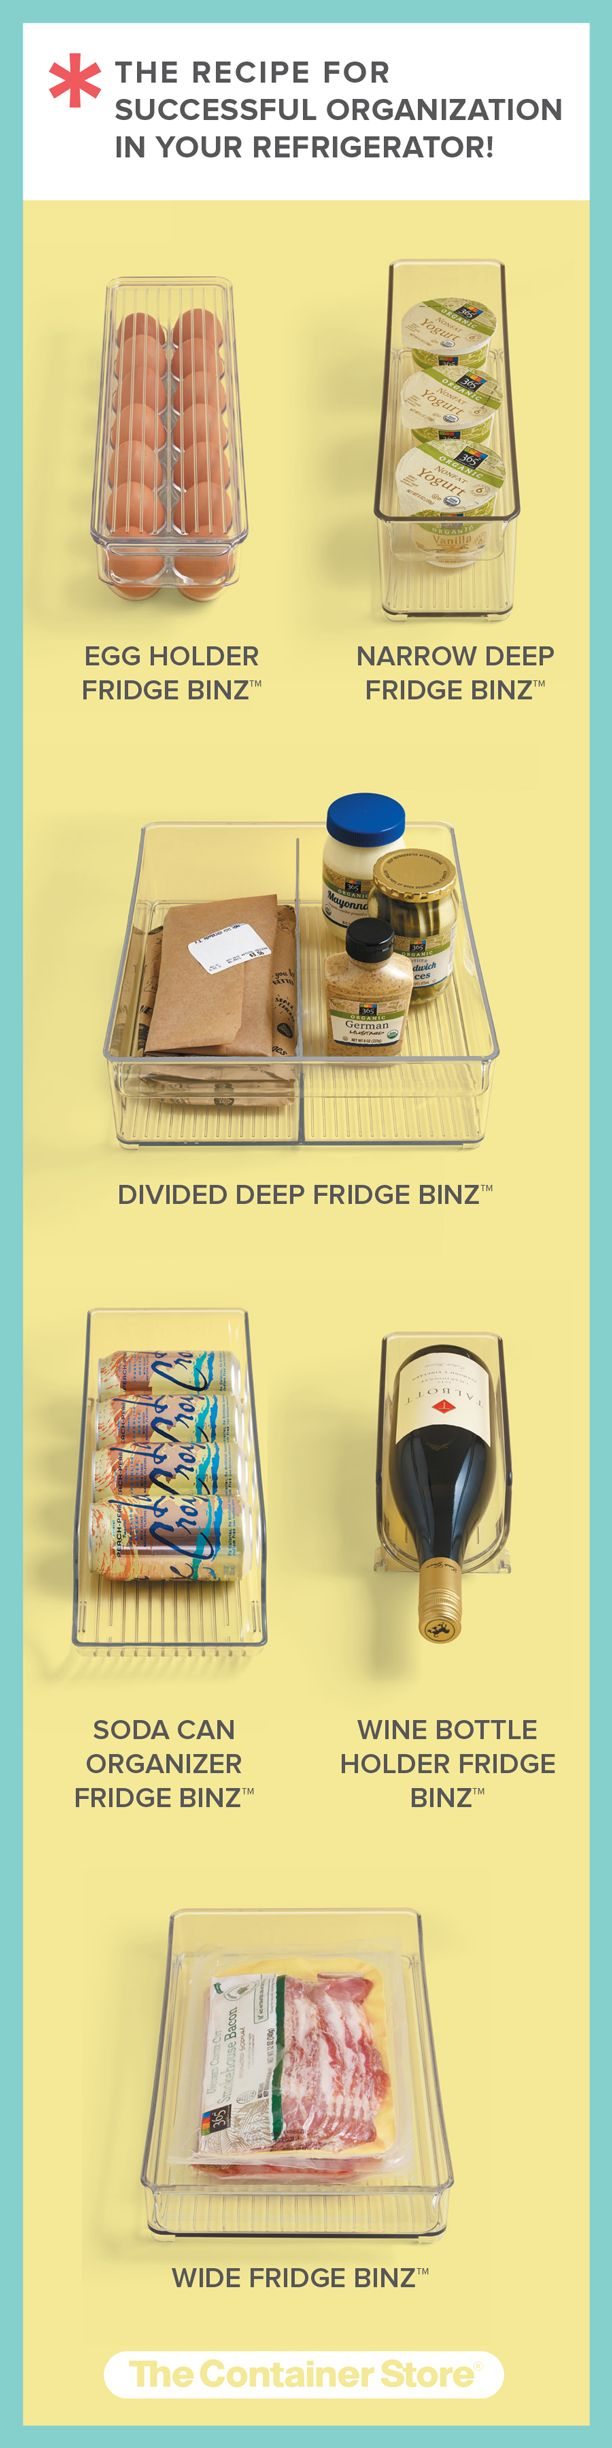 Your spring organization isn't complete without our Fridge Binz! Now THIS is a recipe for successful organization in your refrigerator.